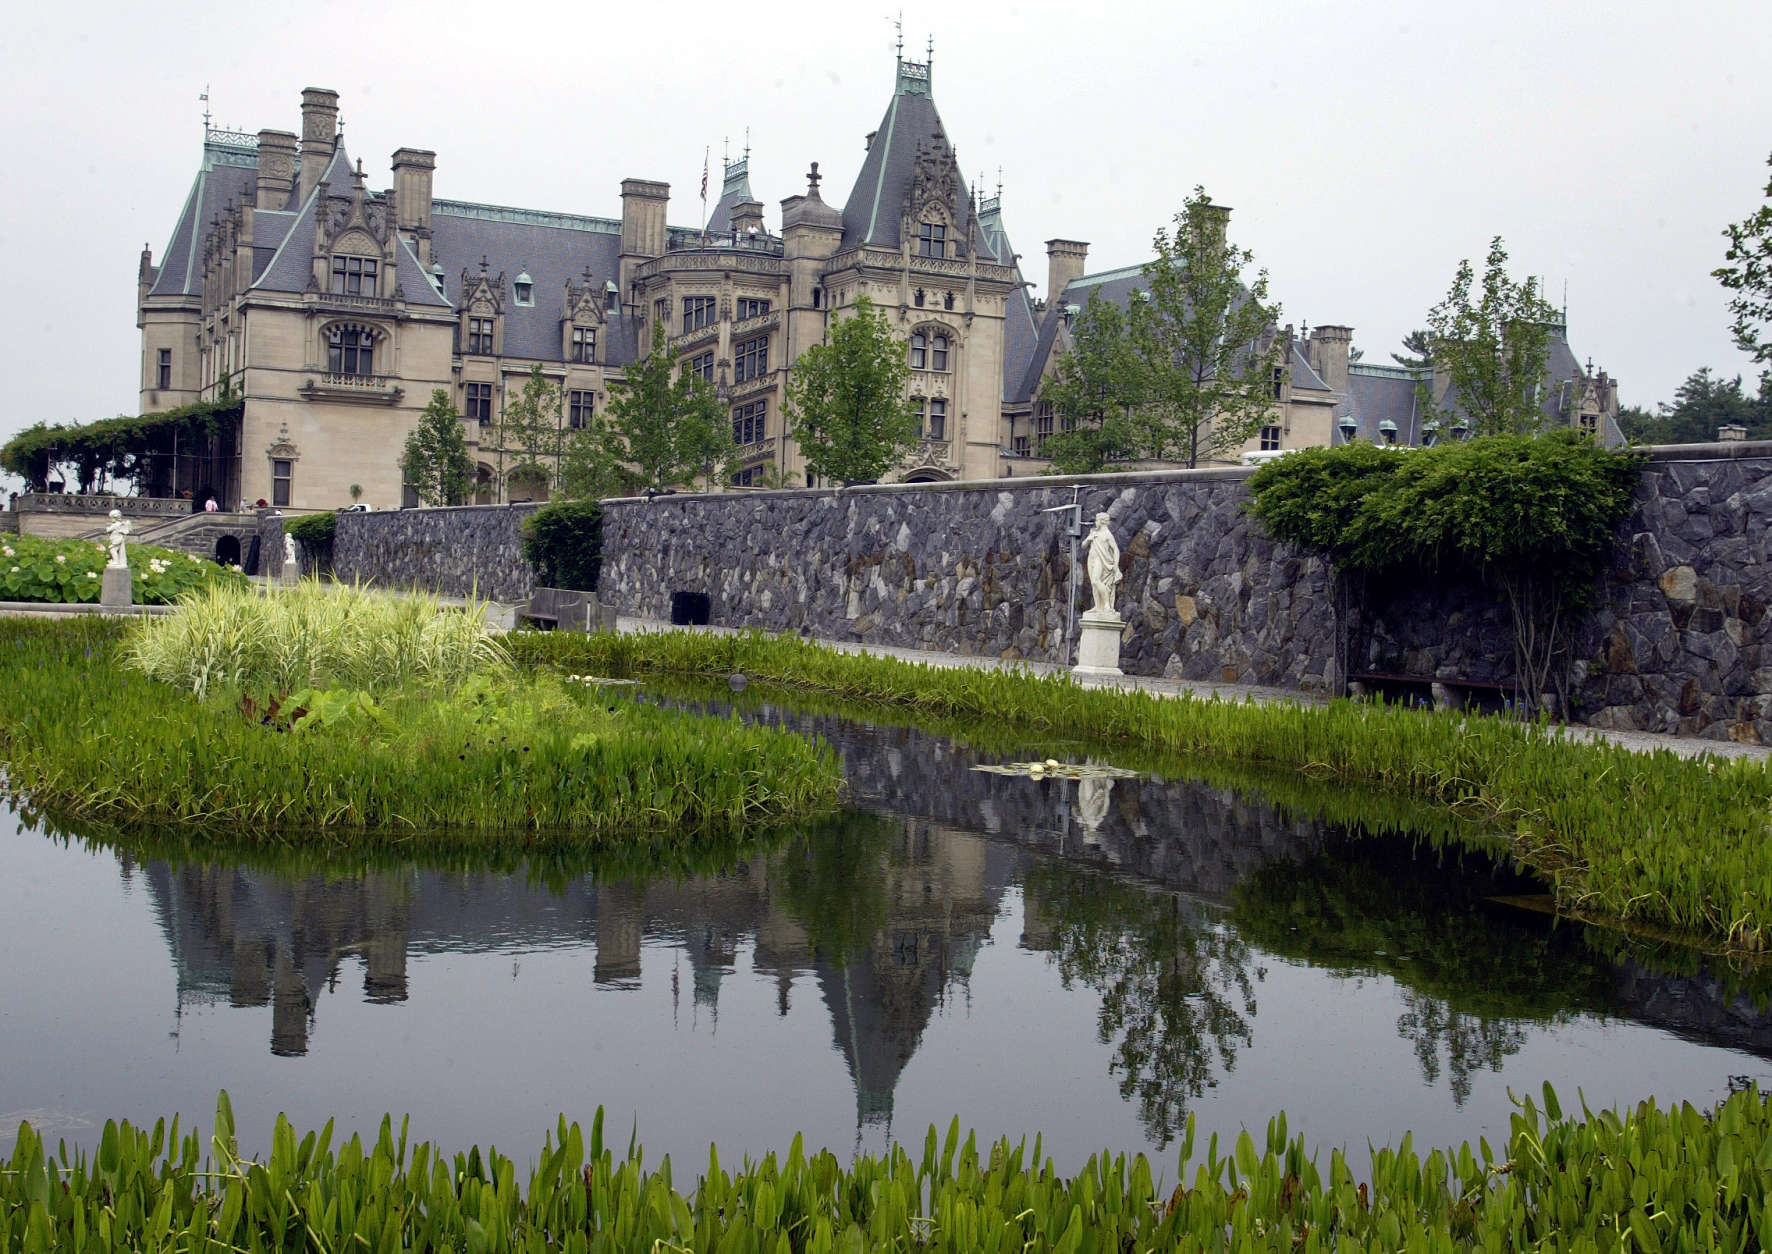 **ADVANCE FOR WEEKEND JULY 16-17**The Biltmore House is reflected in a pond on the estate in Asheville, N.C., Wednesday July 6, 2005. Seventy-five years after it was first opened to the public, George W. Vanderbilt's grand Biltmore House is showing off a new side. Ten rooms on the house's fourth floor _ including several that housed the servants who kept the 250-room house running _ have been restored and opened to the public for the first time. (AP Photo/Chuck Burton)